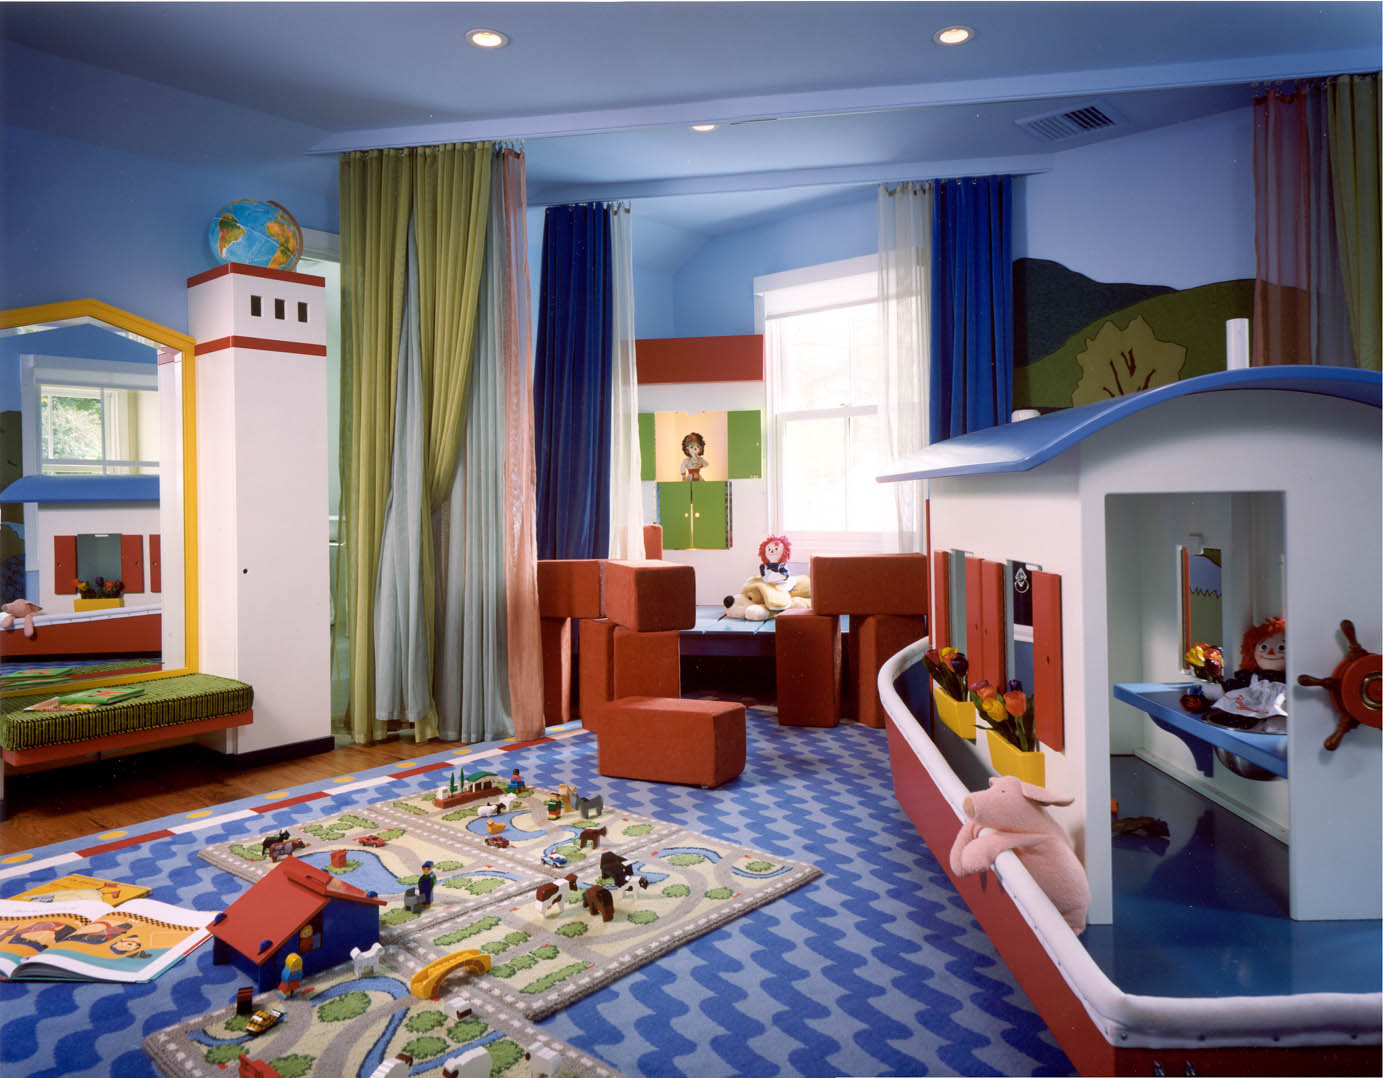 Design Boys Playroom kids playroom designs ideas 6